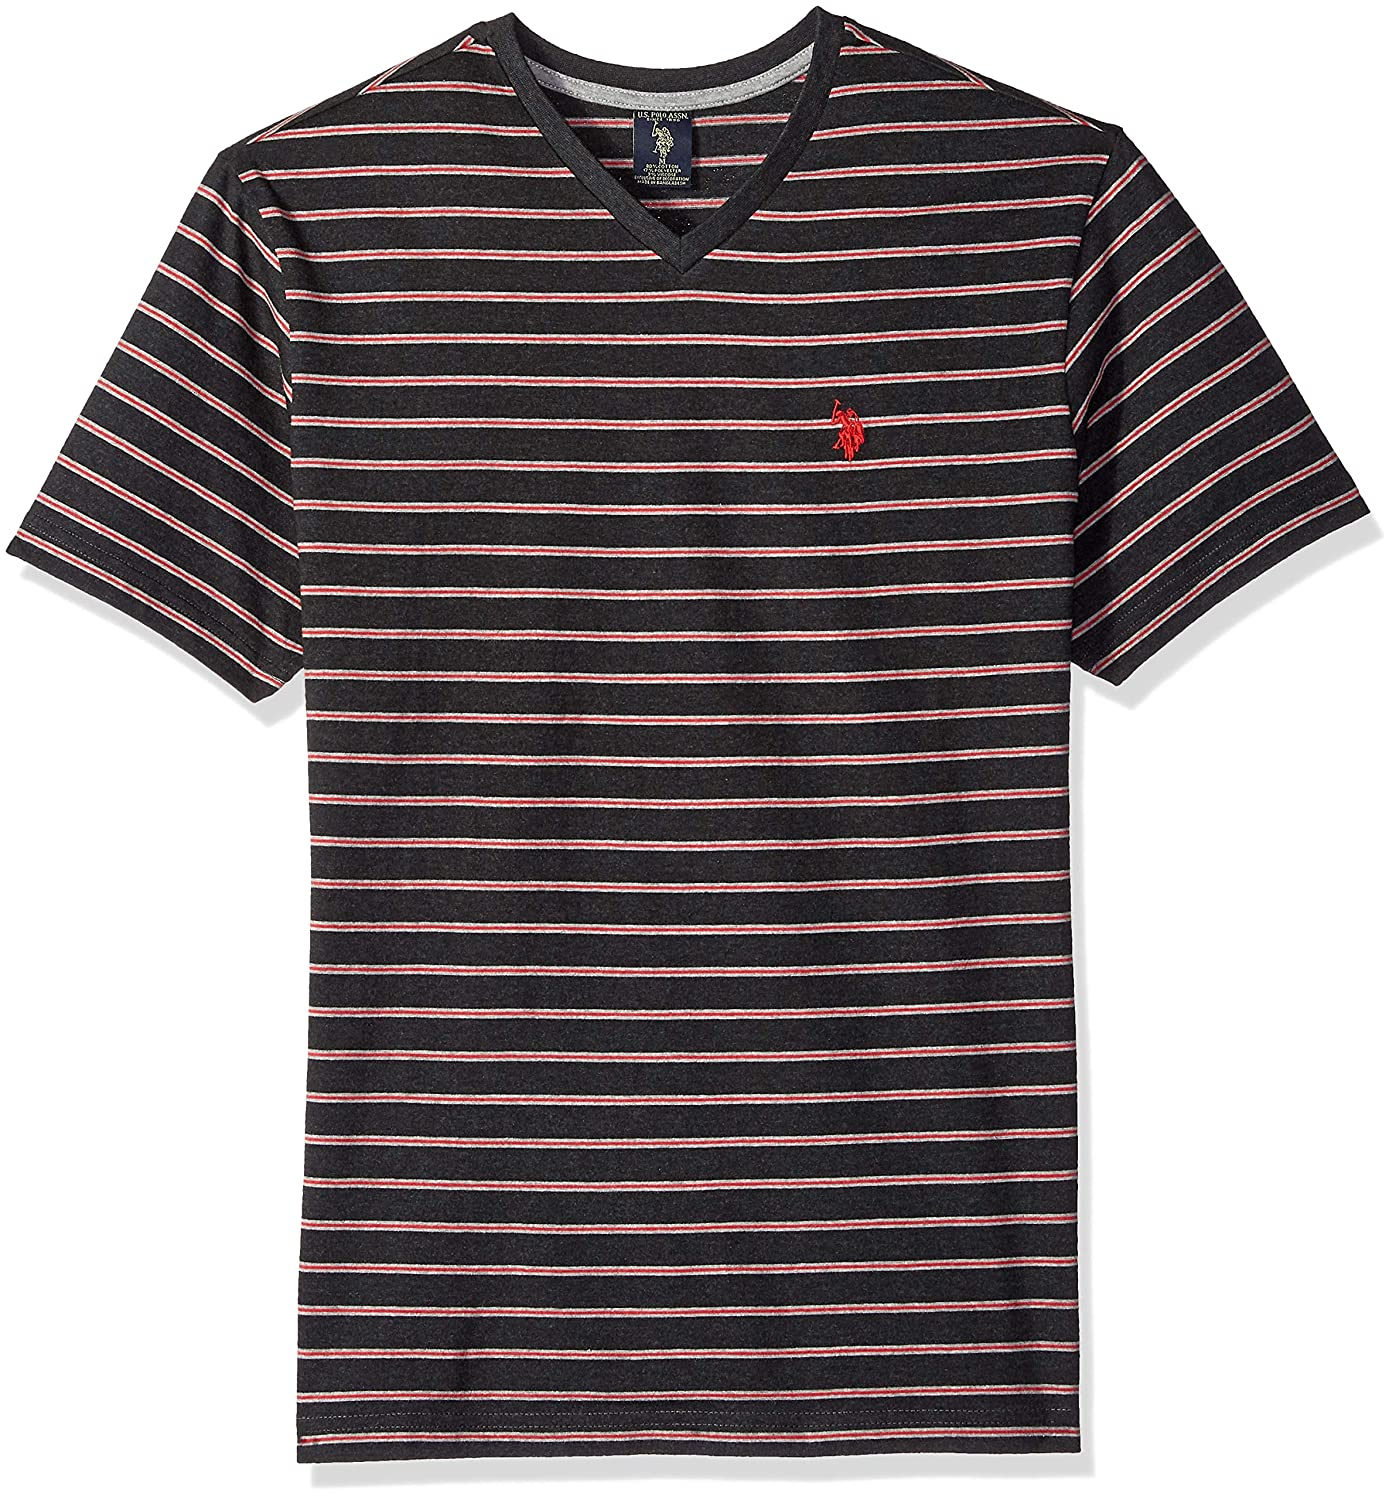 Mens Short Sleeve Striped V-Neck Classic Fit T-Shirt Polo Assn U.S